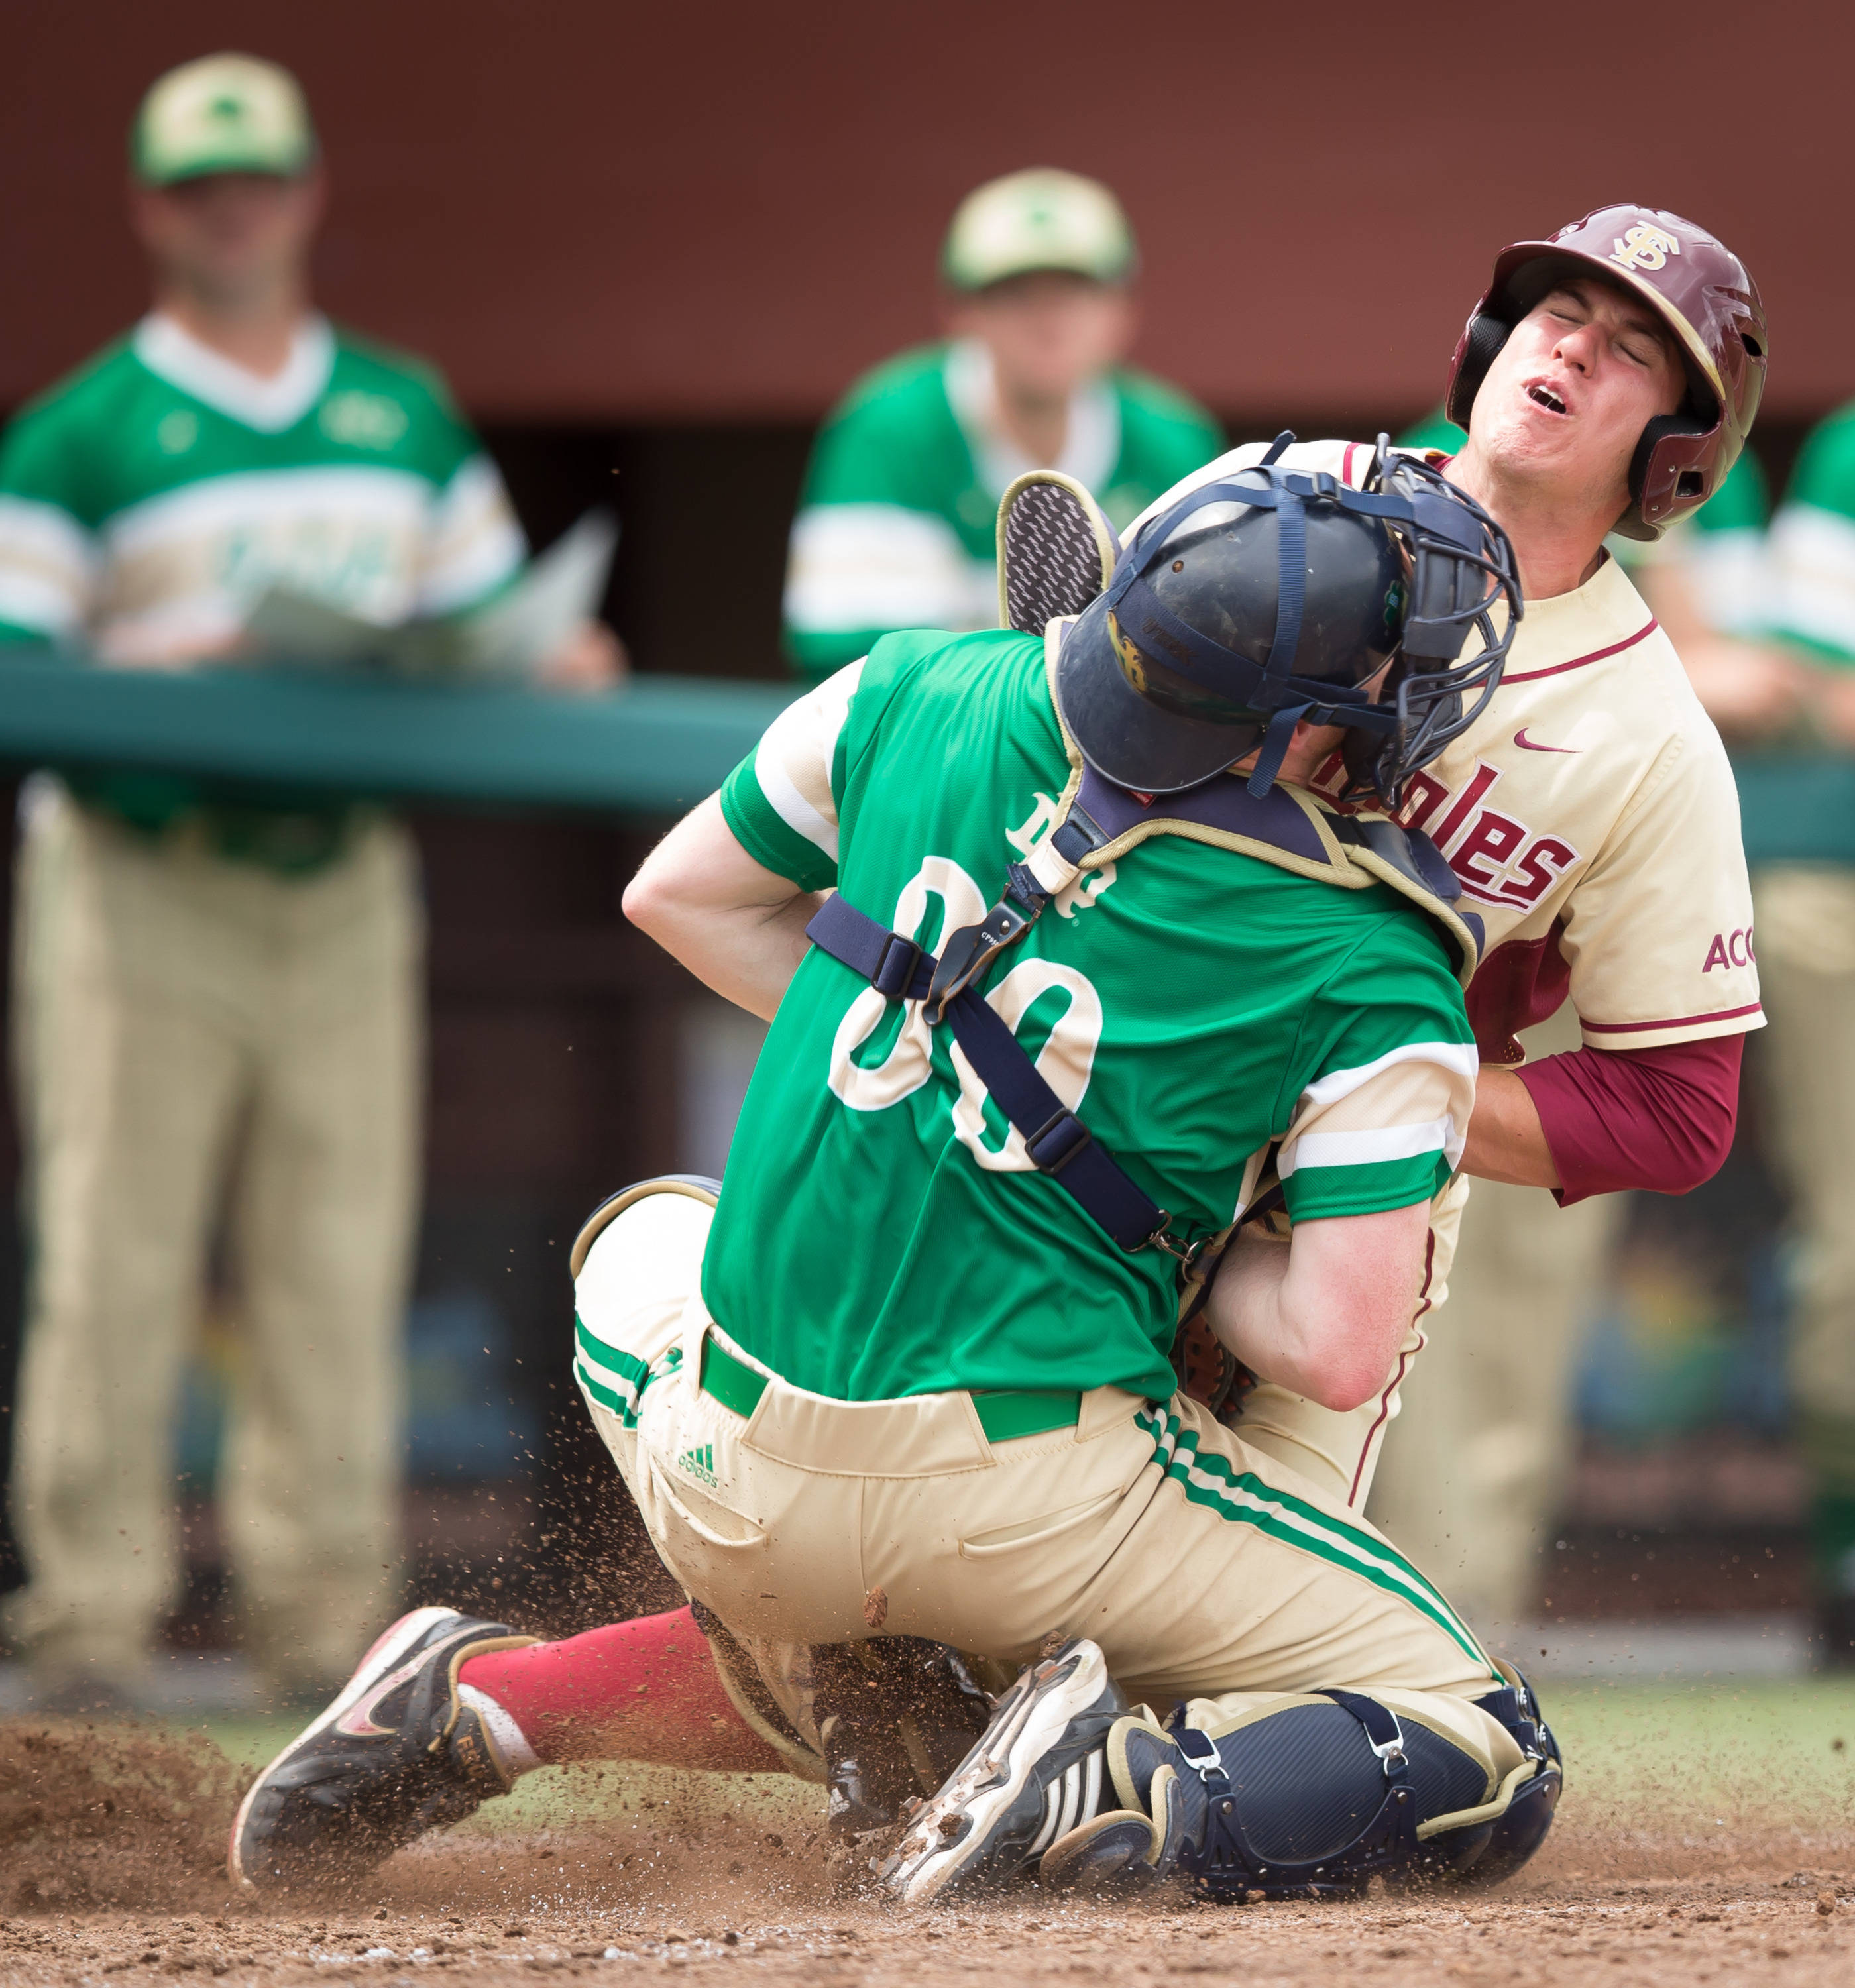 Josh Delph (2) collides with the Notre Dame catcher attempting to score in Game 2.  Delph was safe when the catcher dropped the ball.